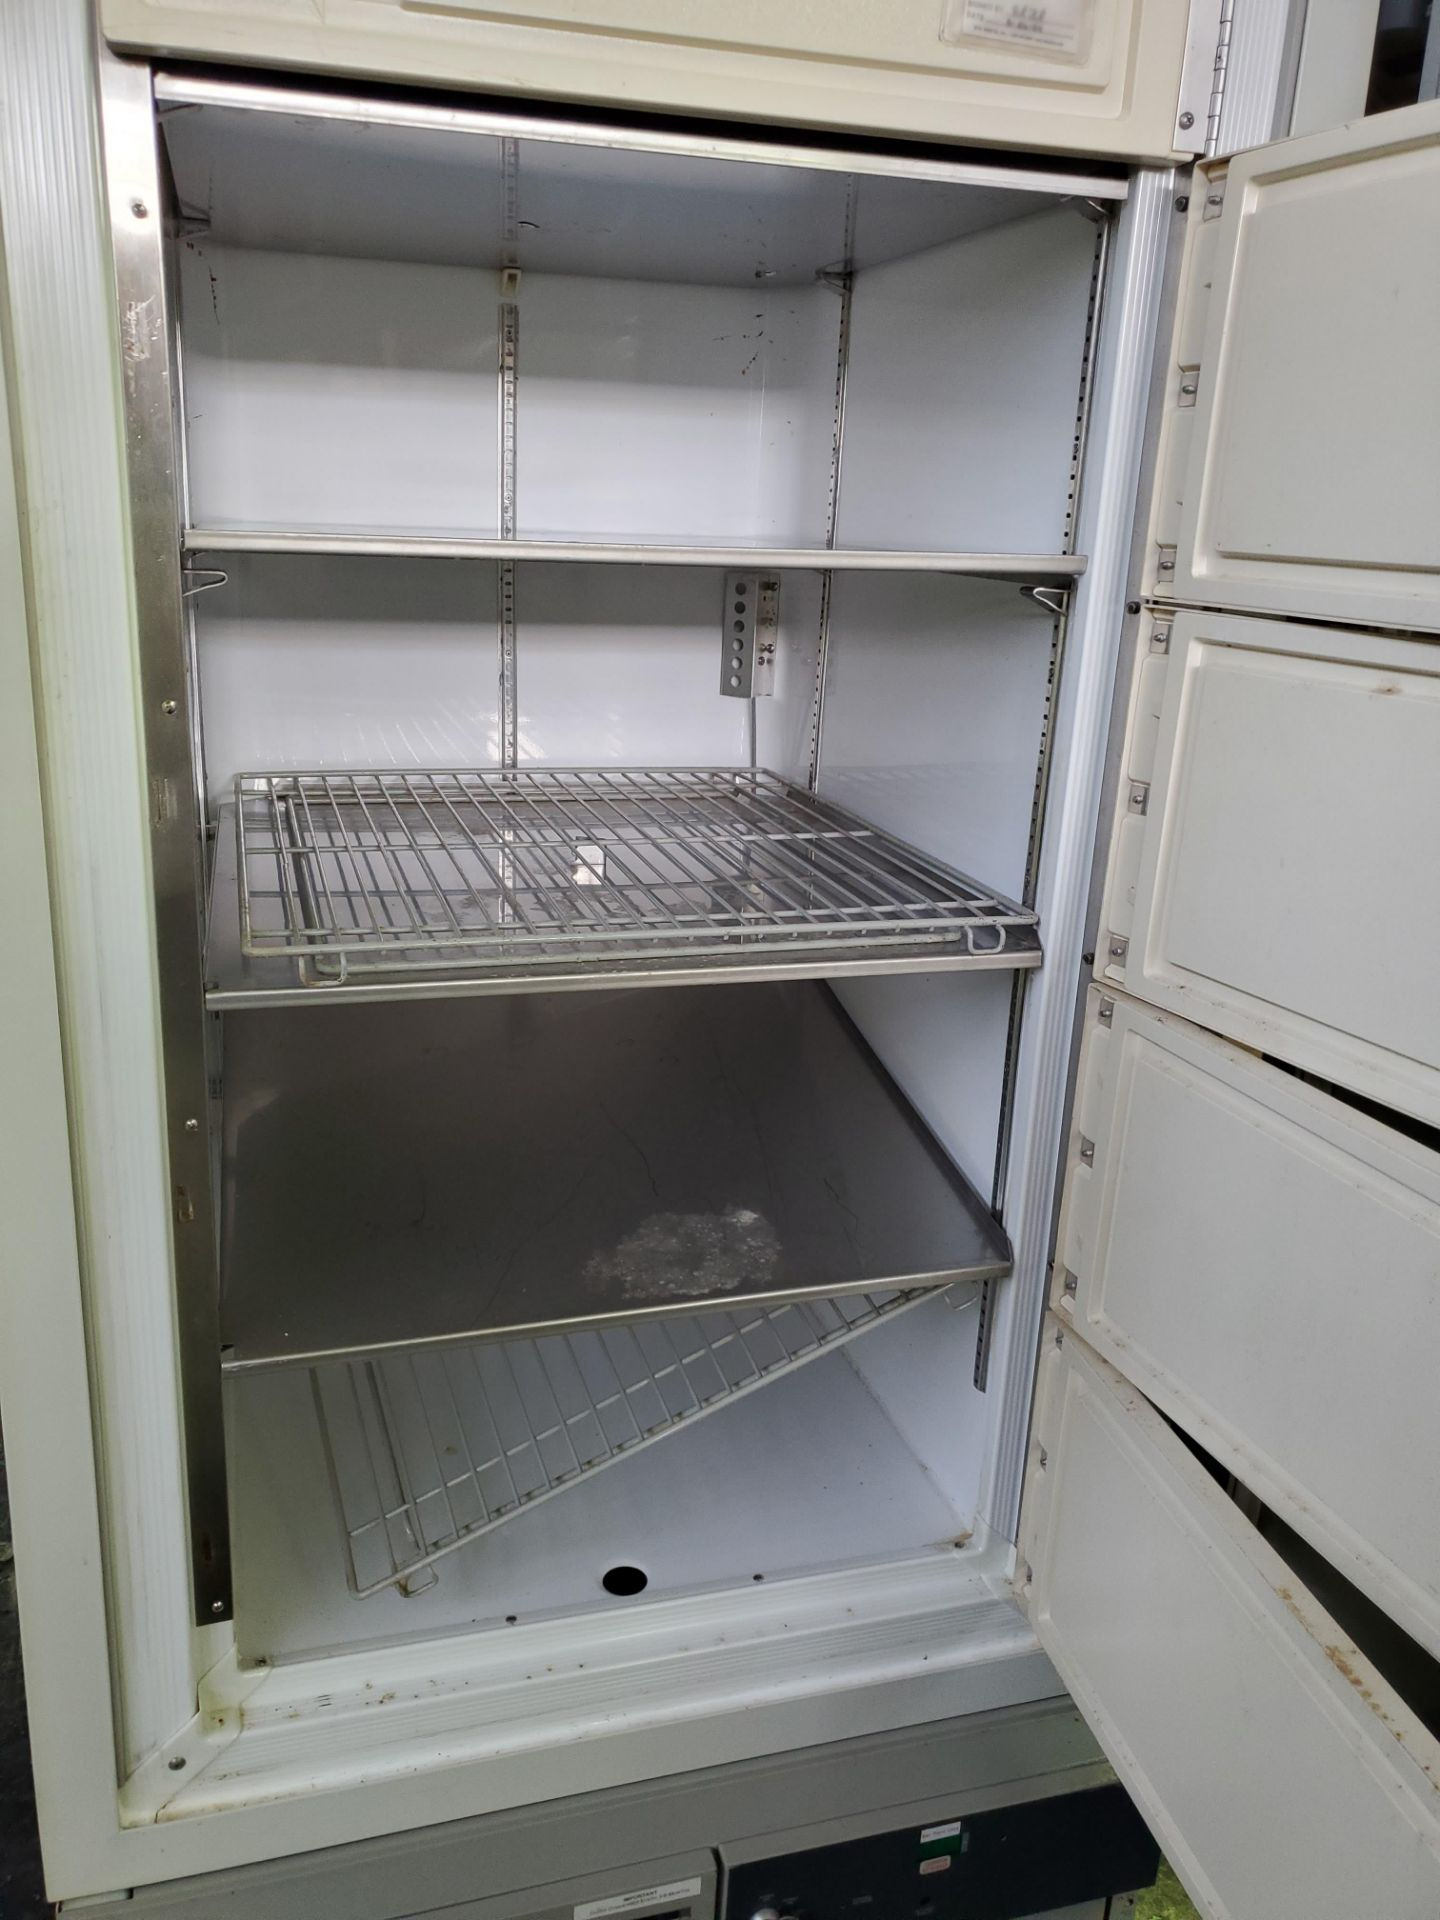 Revco/GS Laboratory Equipment Freezer, model ULT1740-3-A34 - Image 4 of 7